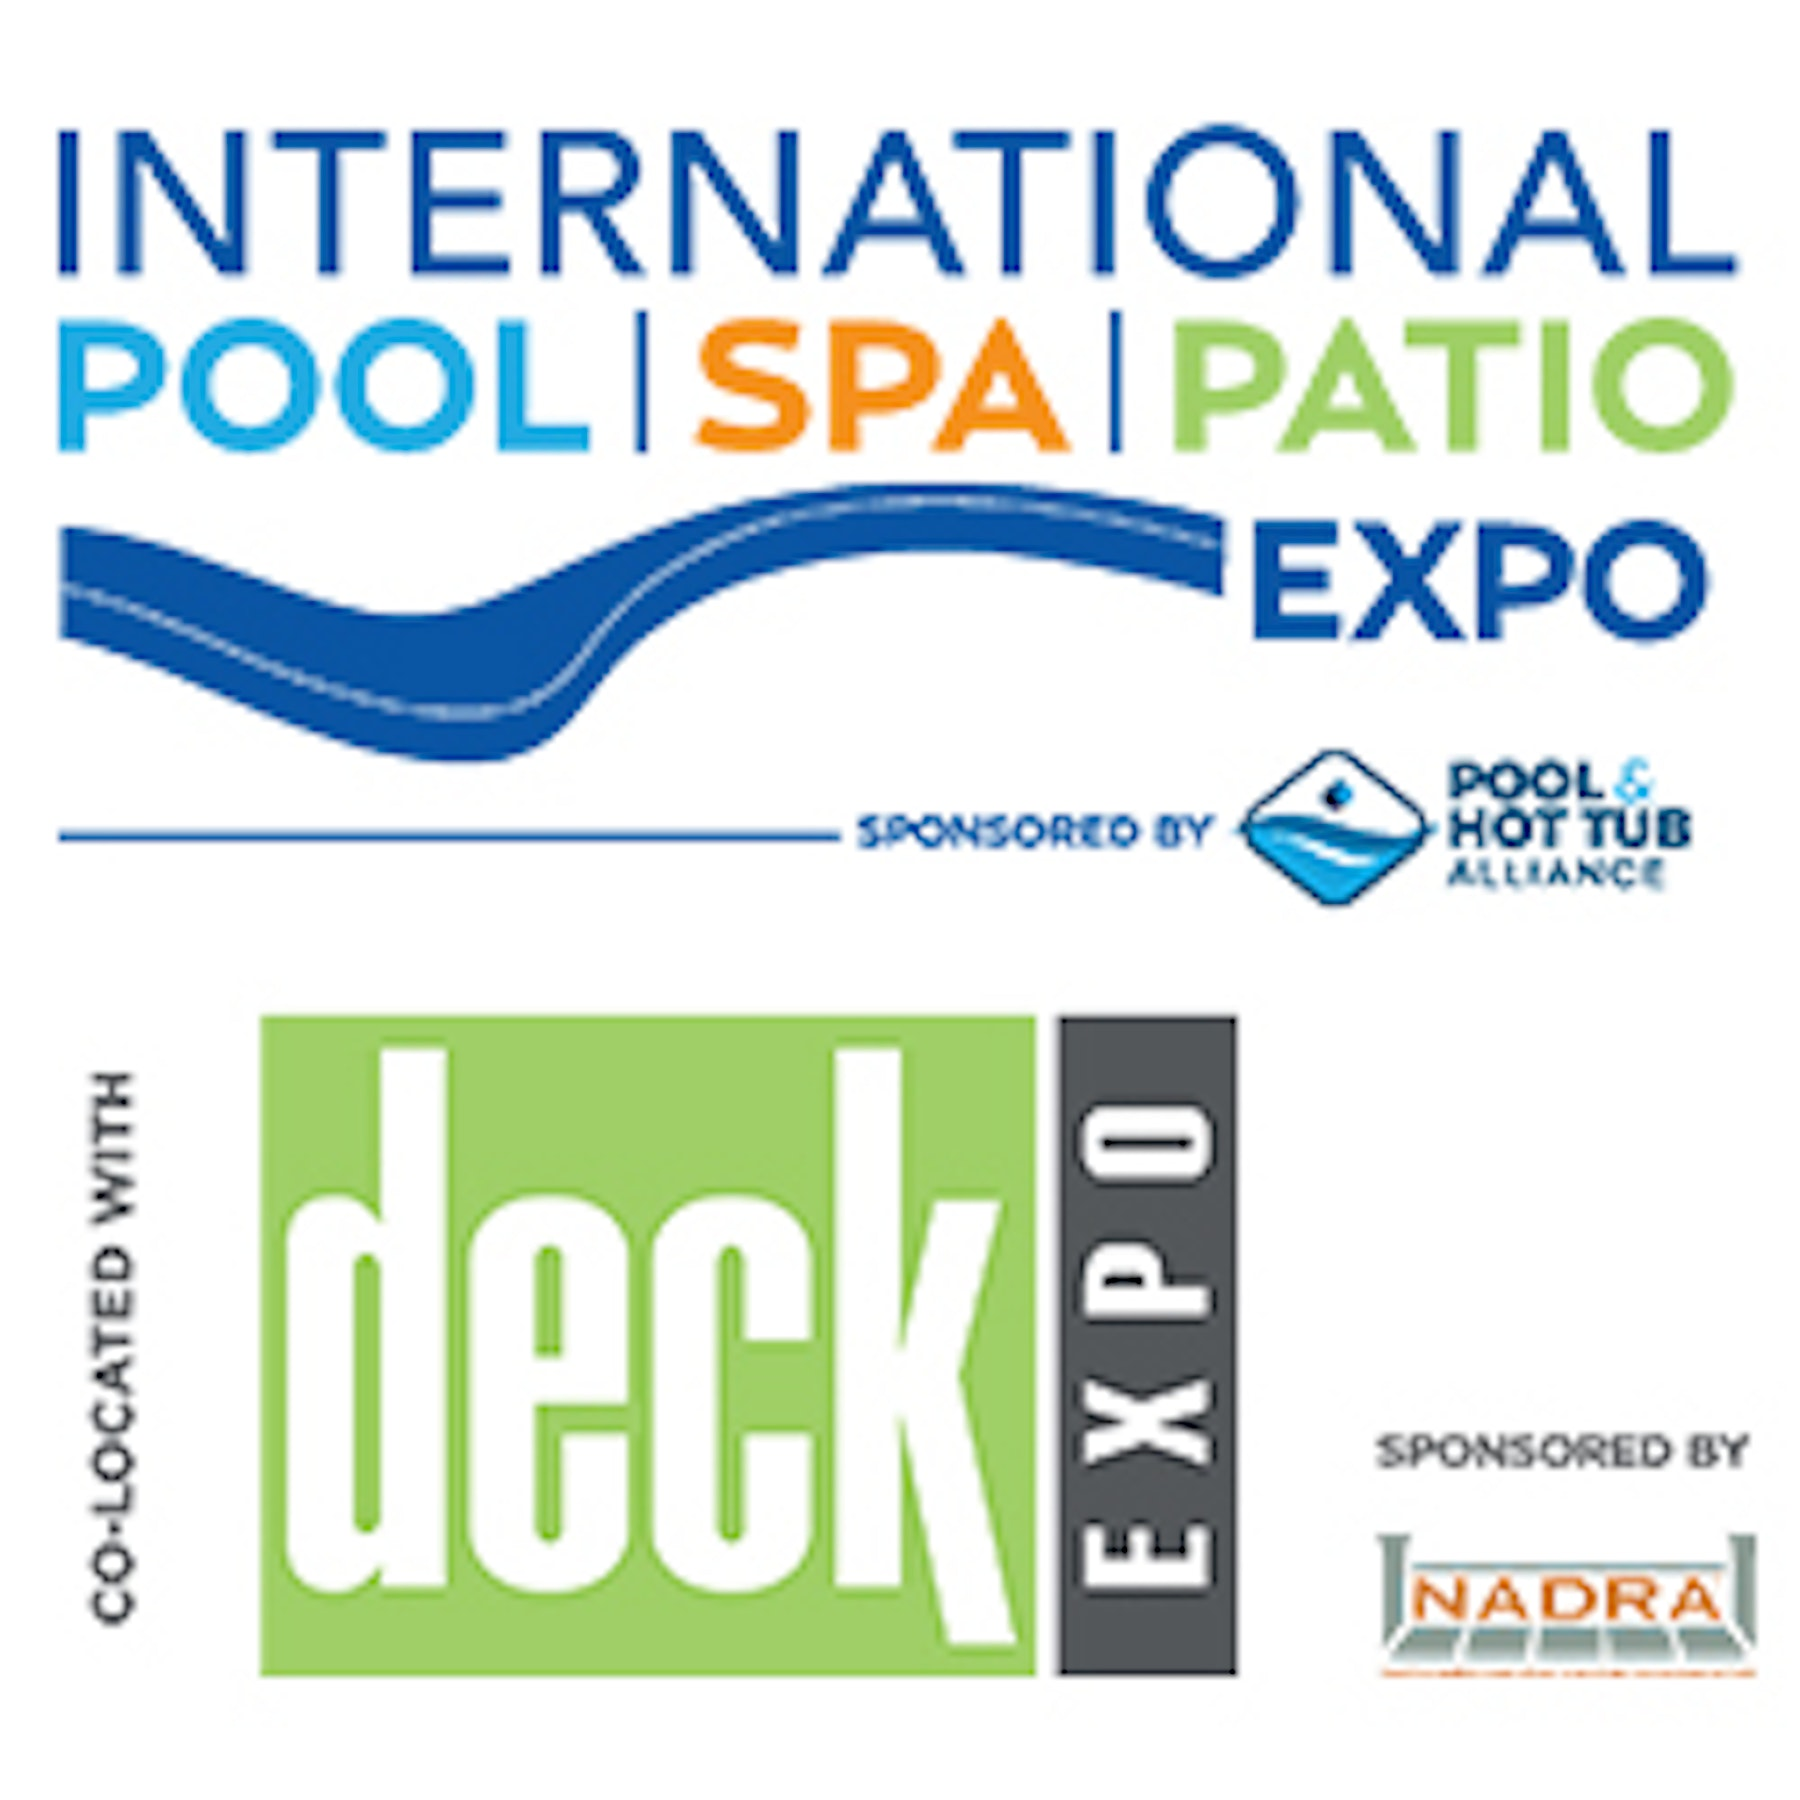 International Pool | Spa | Patio Expo Logo